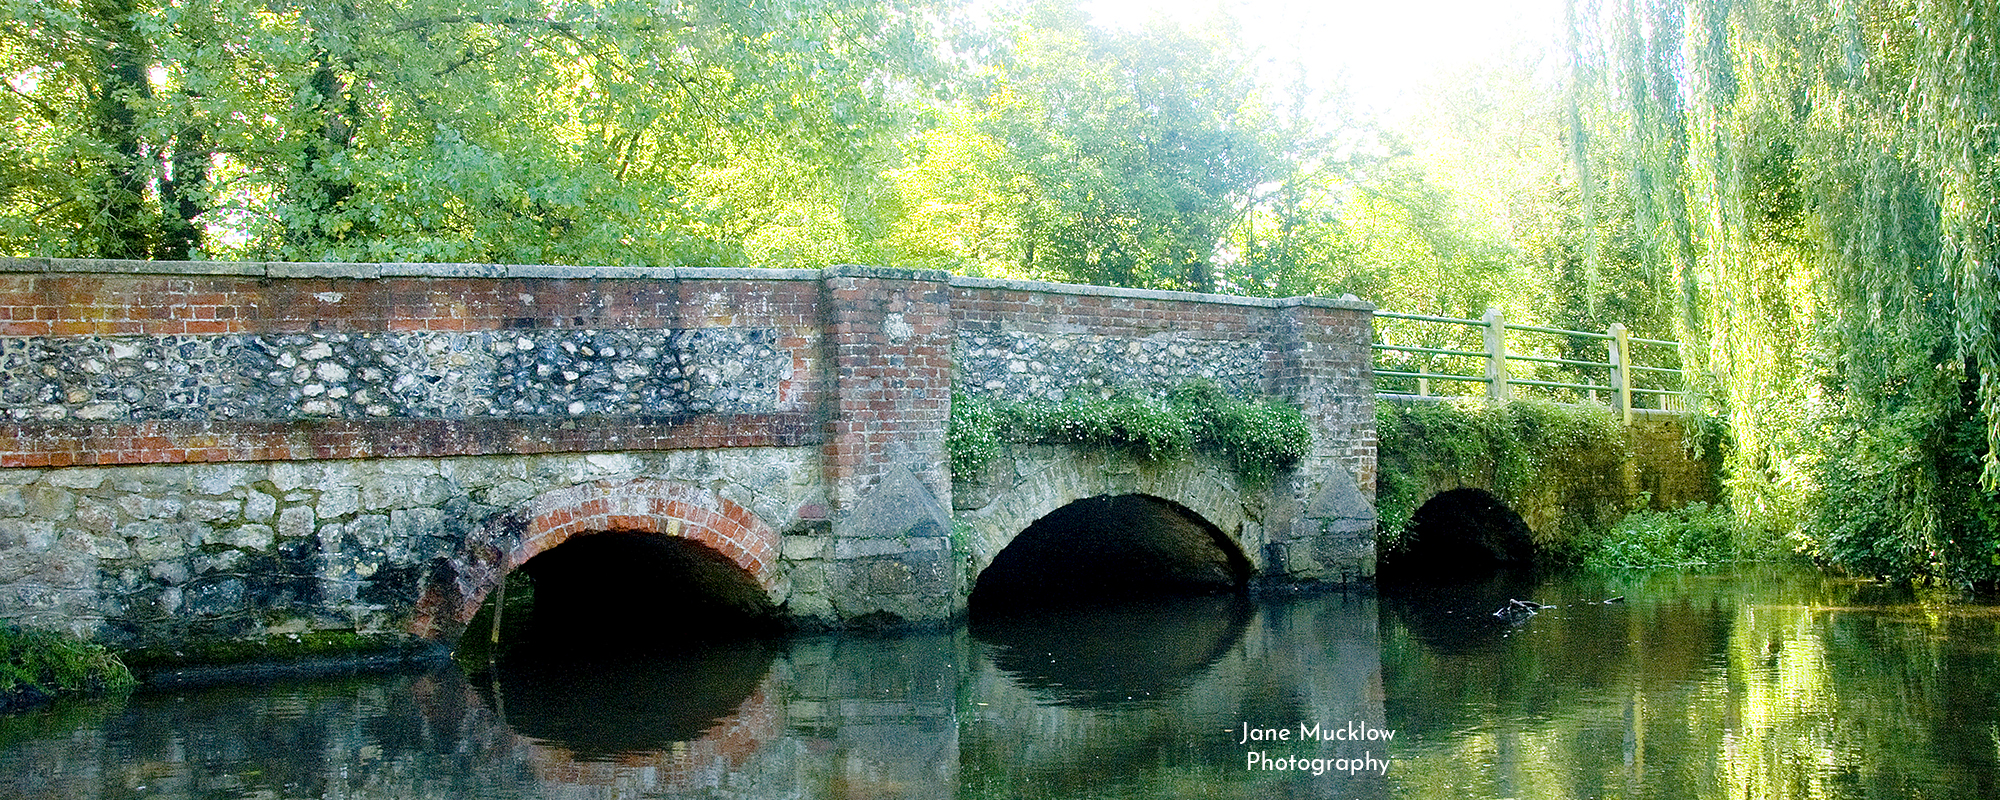 Photo by Jane Mucklow of the bridge at Shoreham, Kent, available as a canvas for your wall.